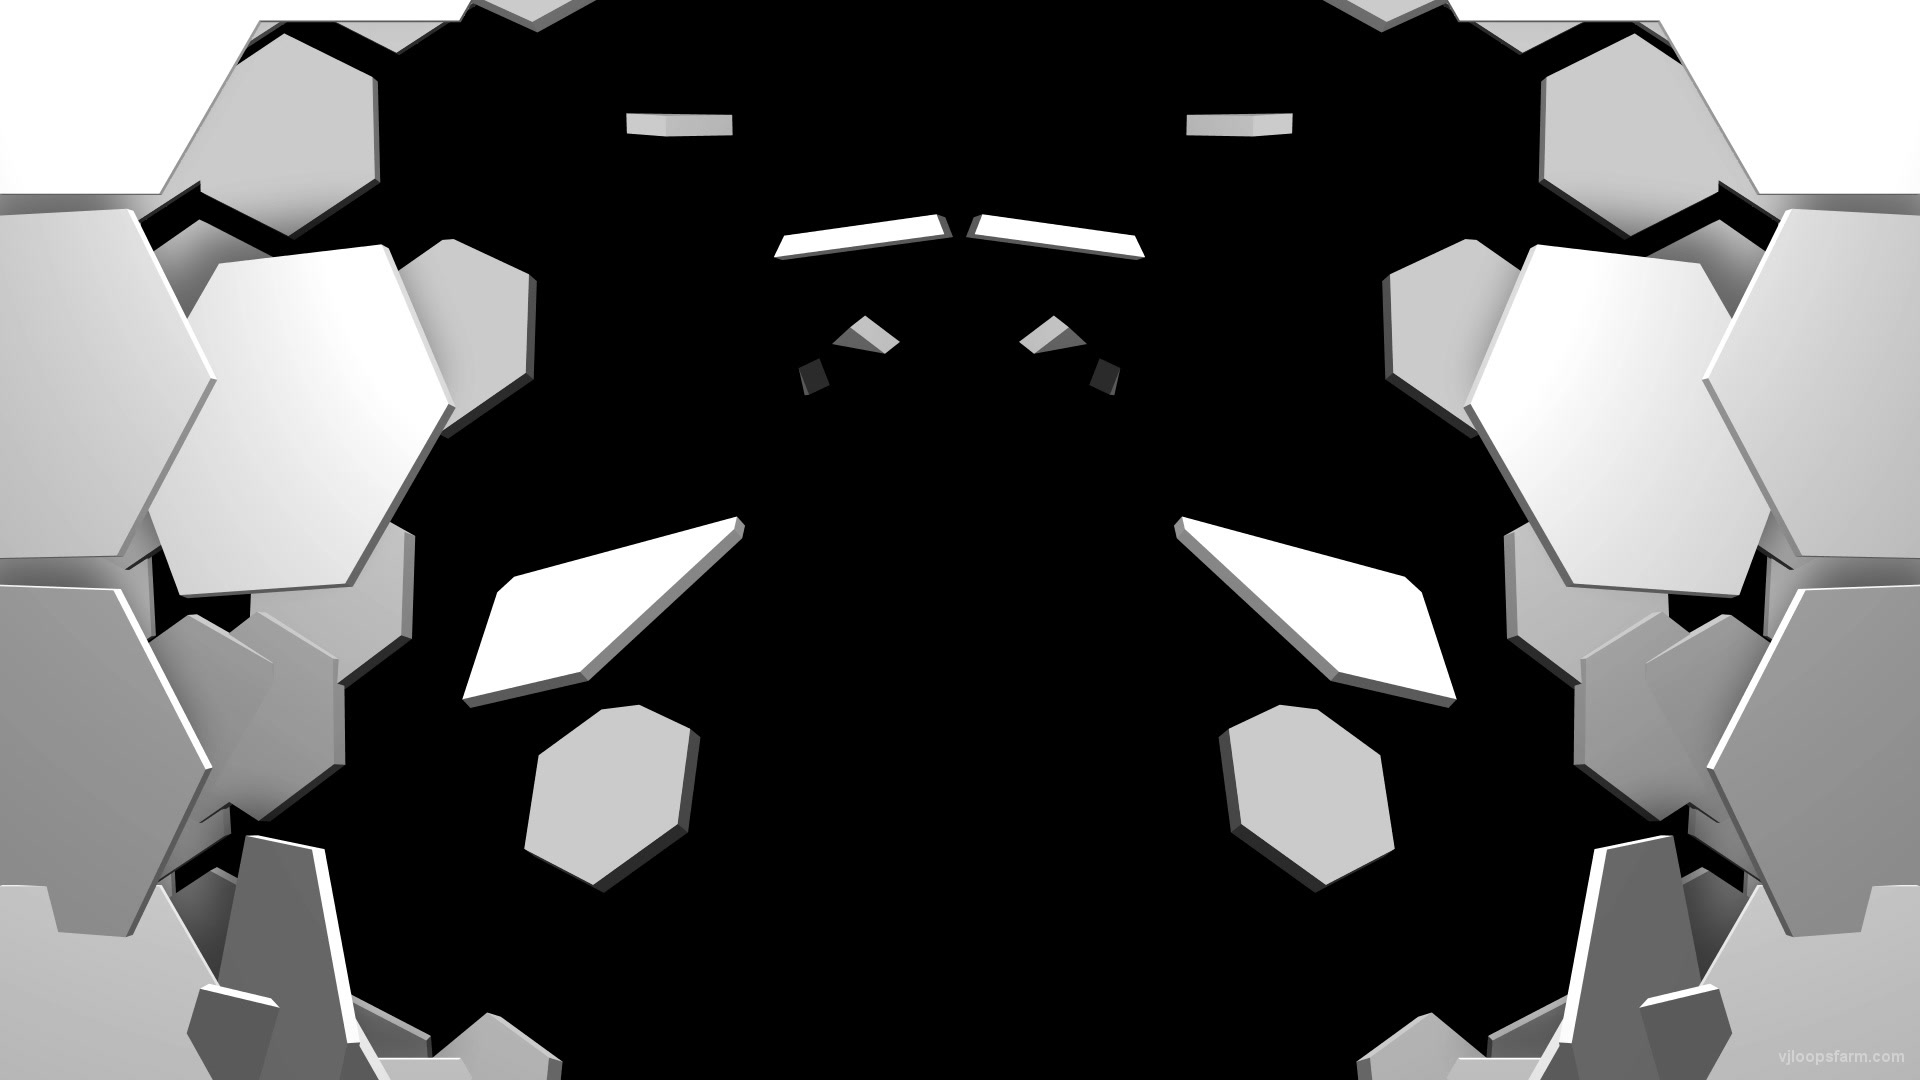 Falling Hexagon Gate 3D Displace Effect Transition Video Loop for  Projection Mapping   Download at VJ Loops Farm